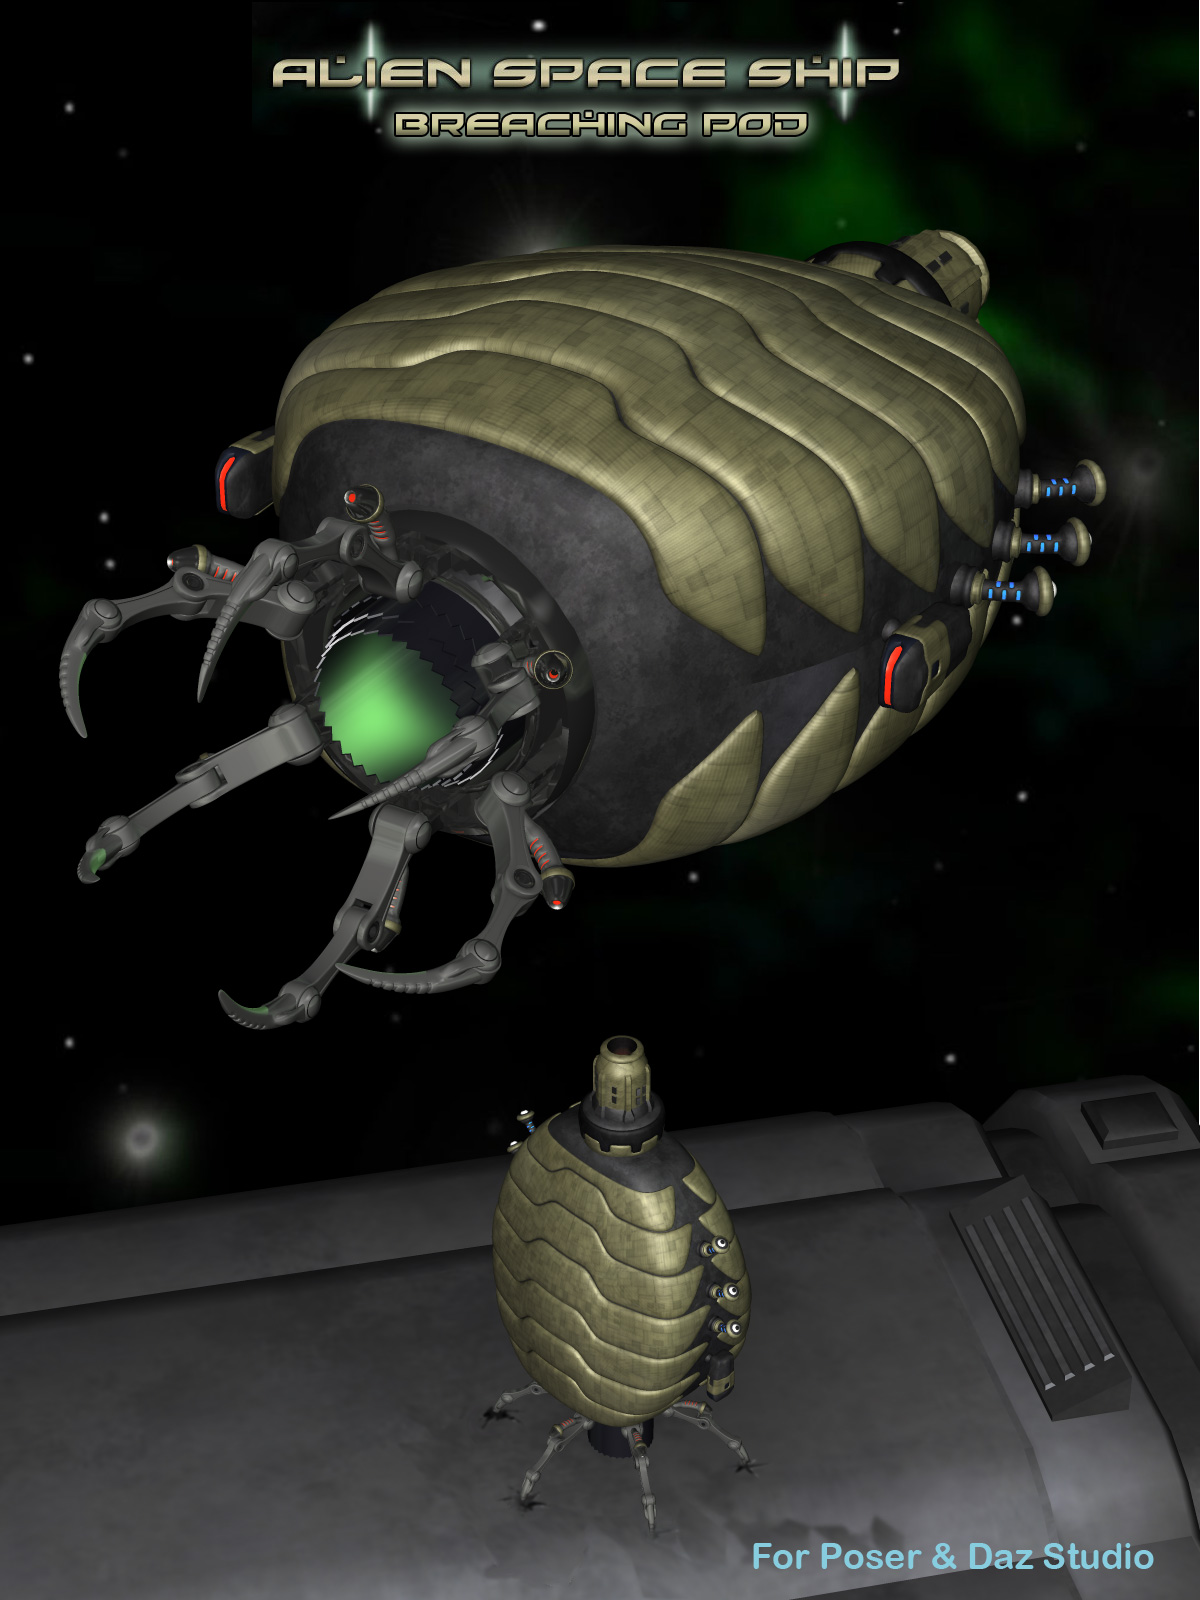 3d Models For Poser And Daz Studio: Alien Breaching Pod 3D Models Simon-3D